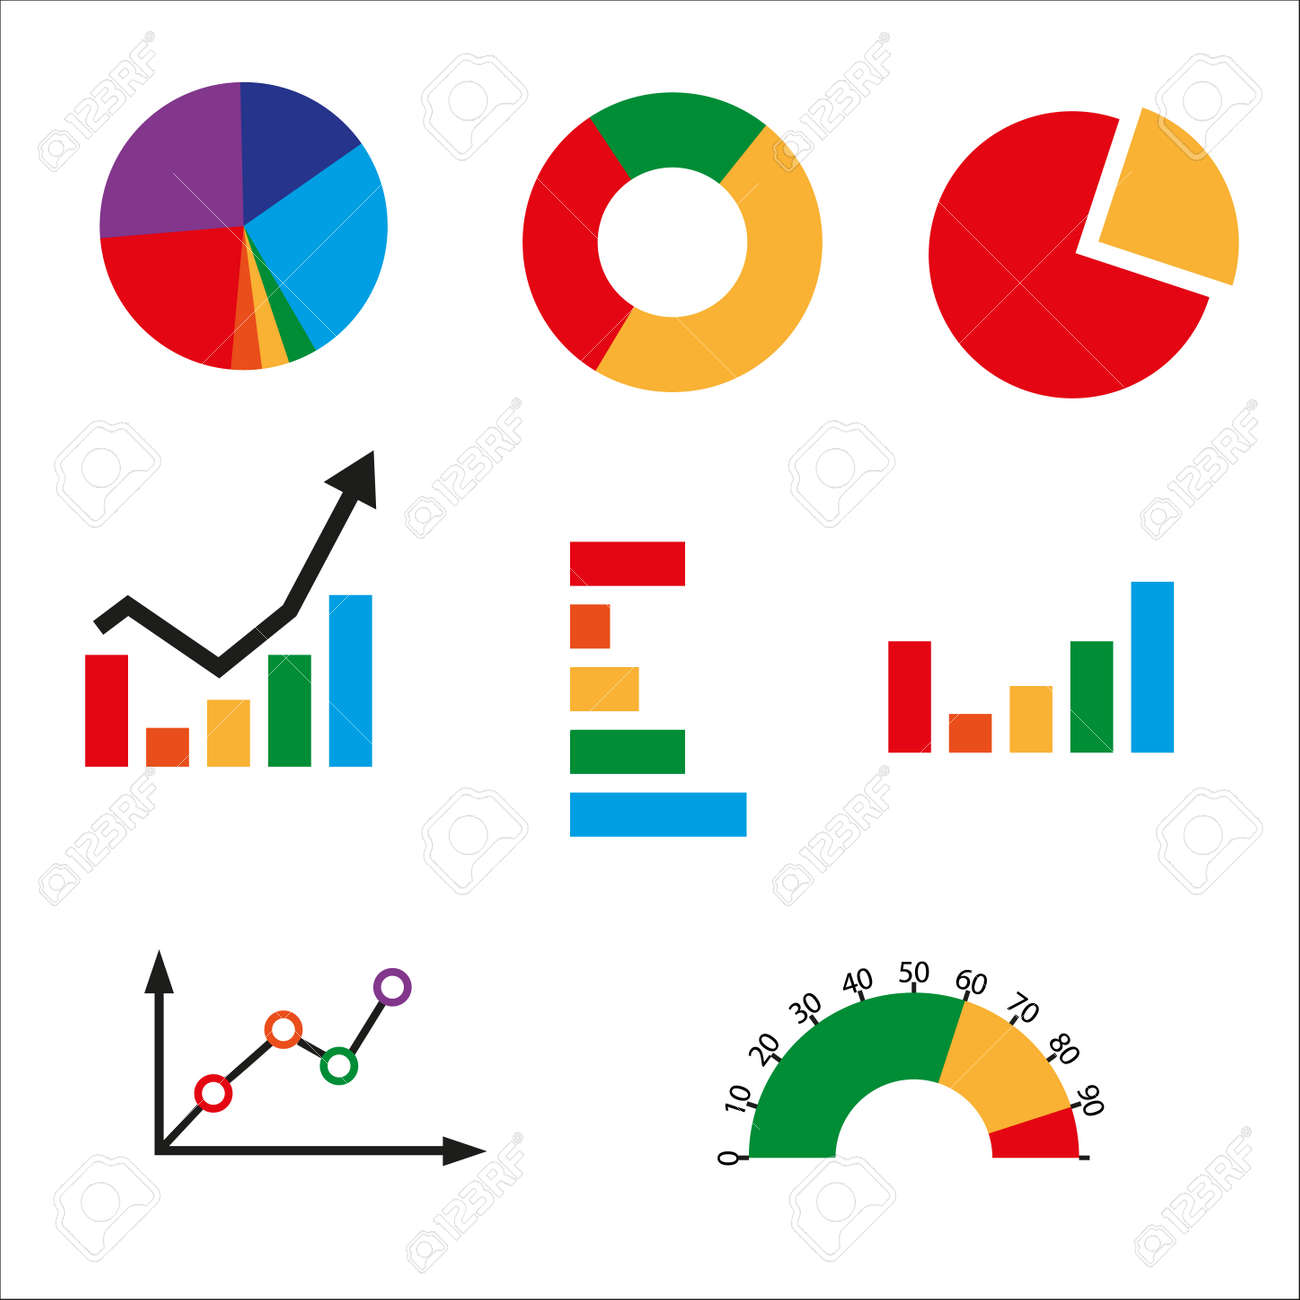 Different kinds of business charts bar chart pie chart line different kinds of business charts bar chart pie chart line chart bench nvjuhfo Images